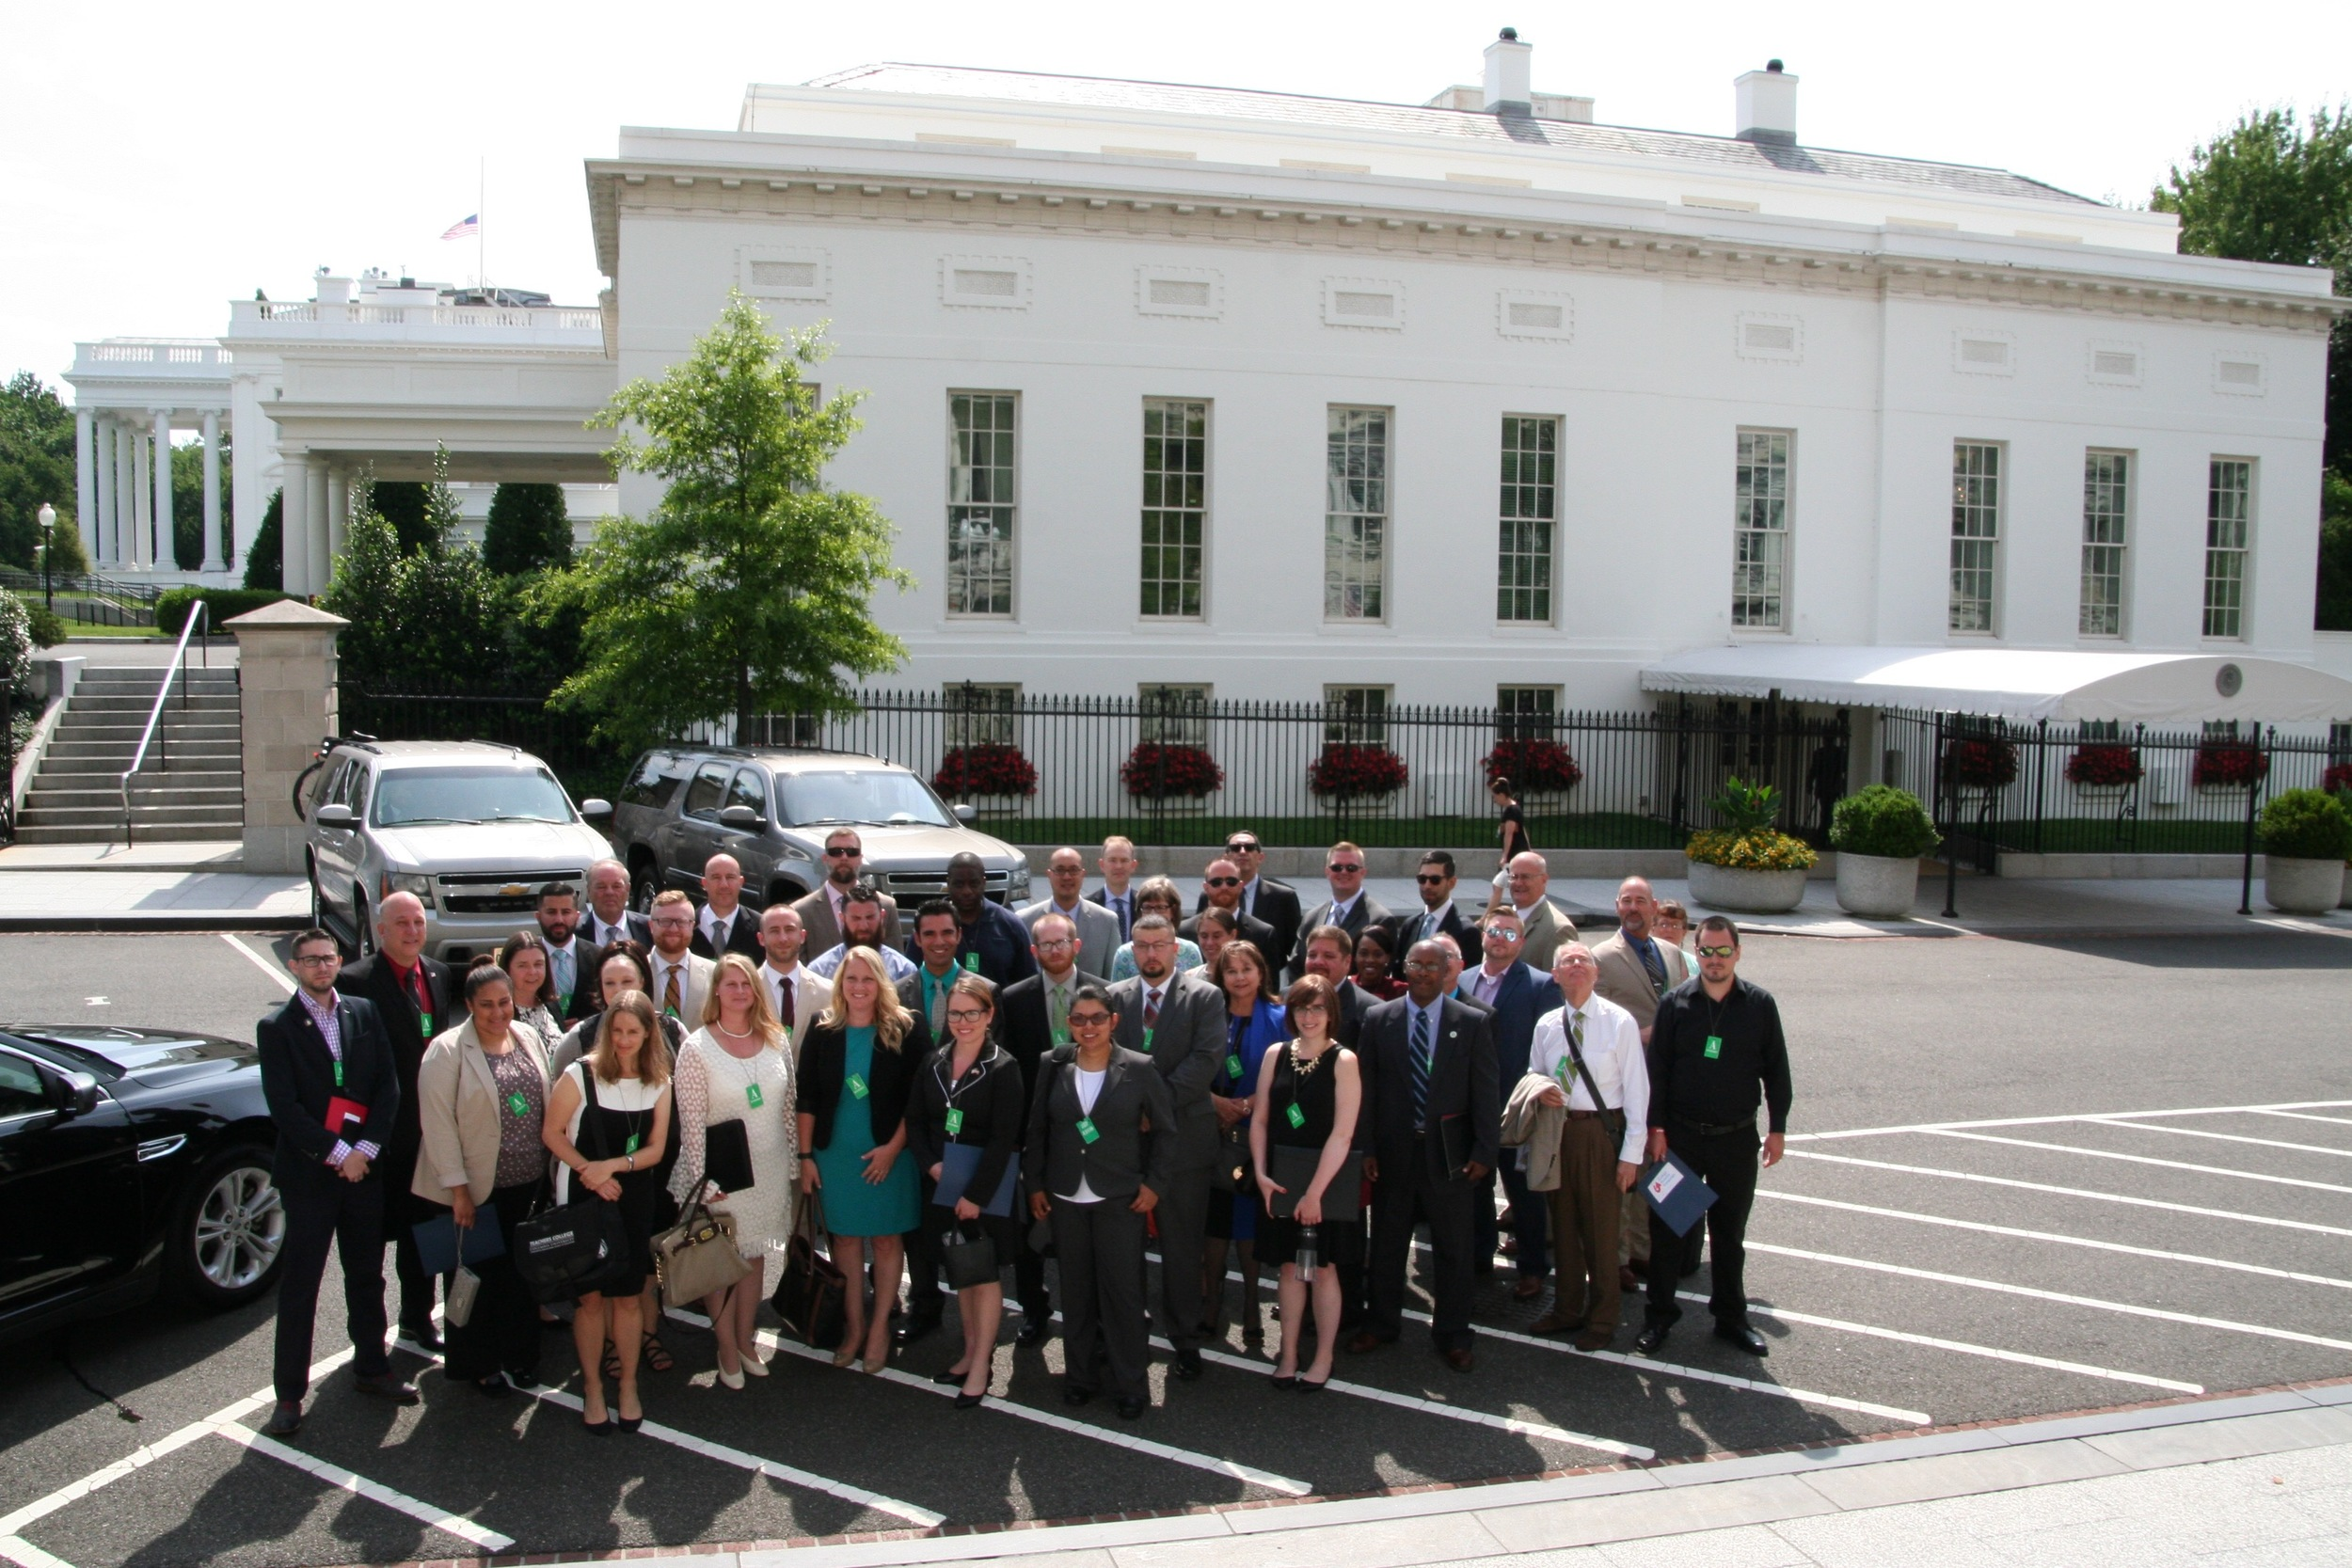 Students and administrators from community colleges discuss campus supports for veterans at the White House, July 12, 2016